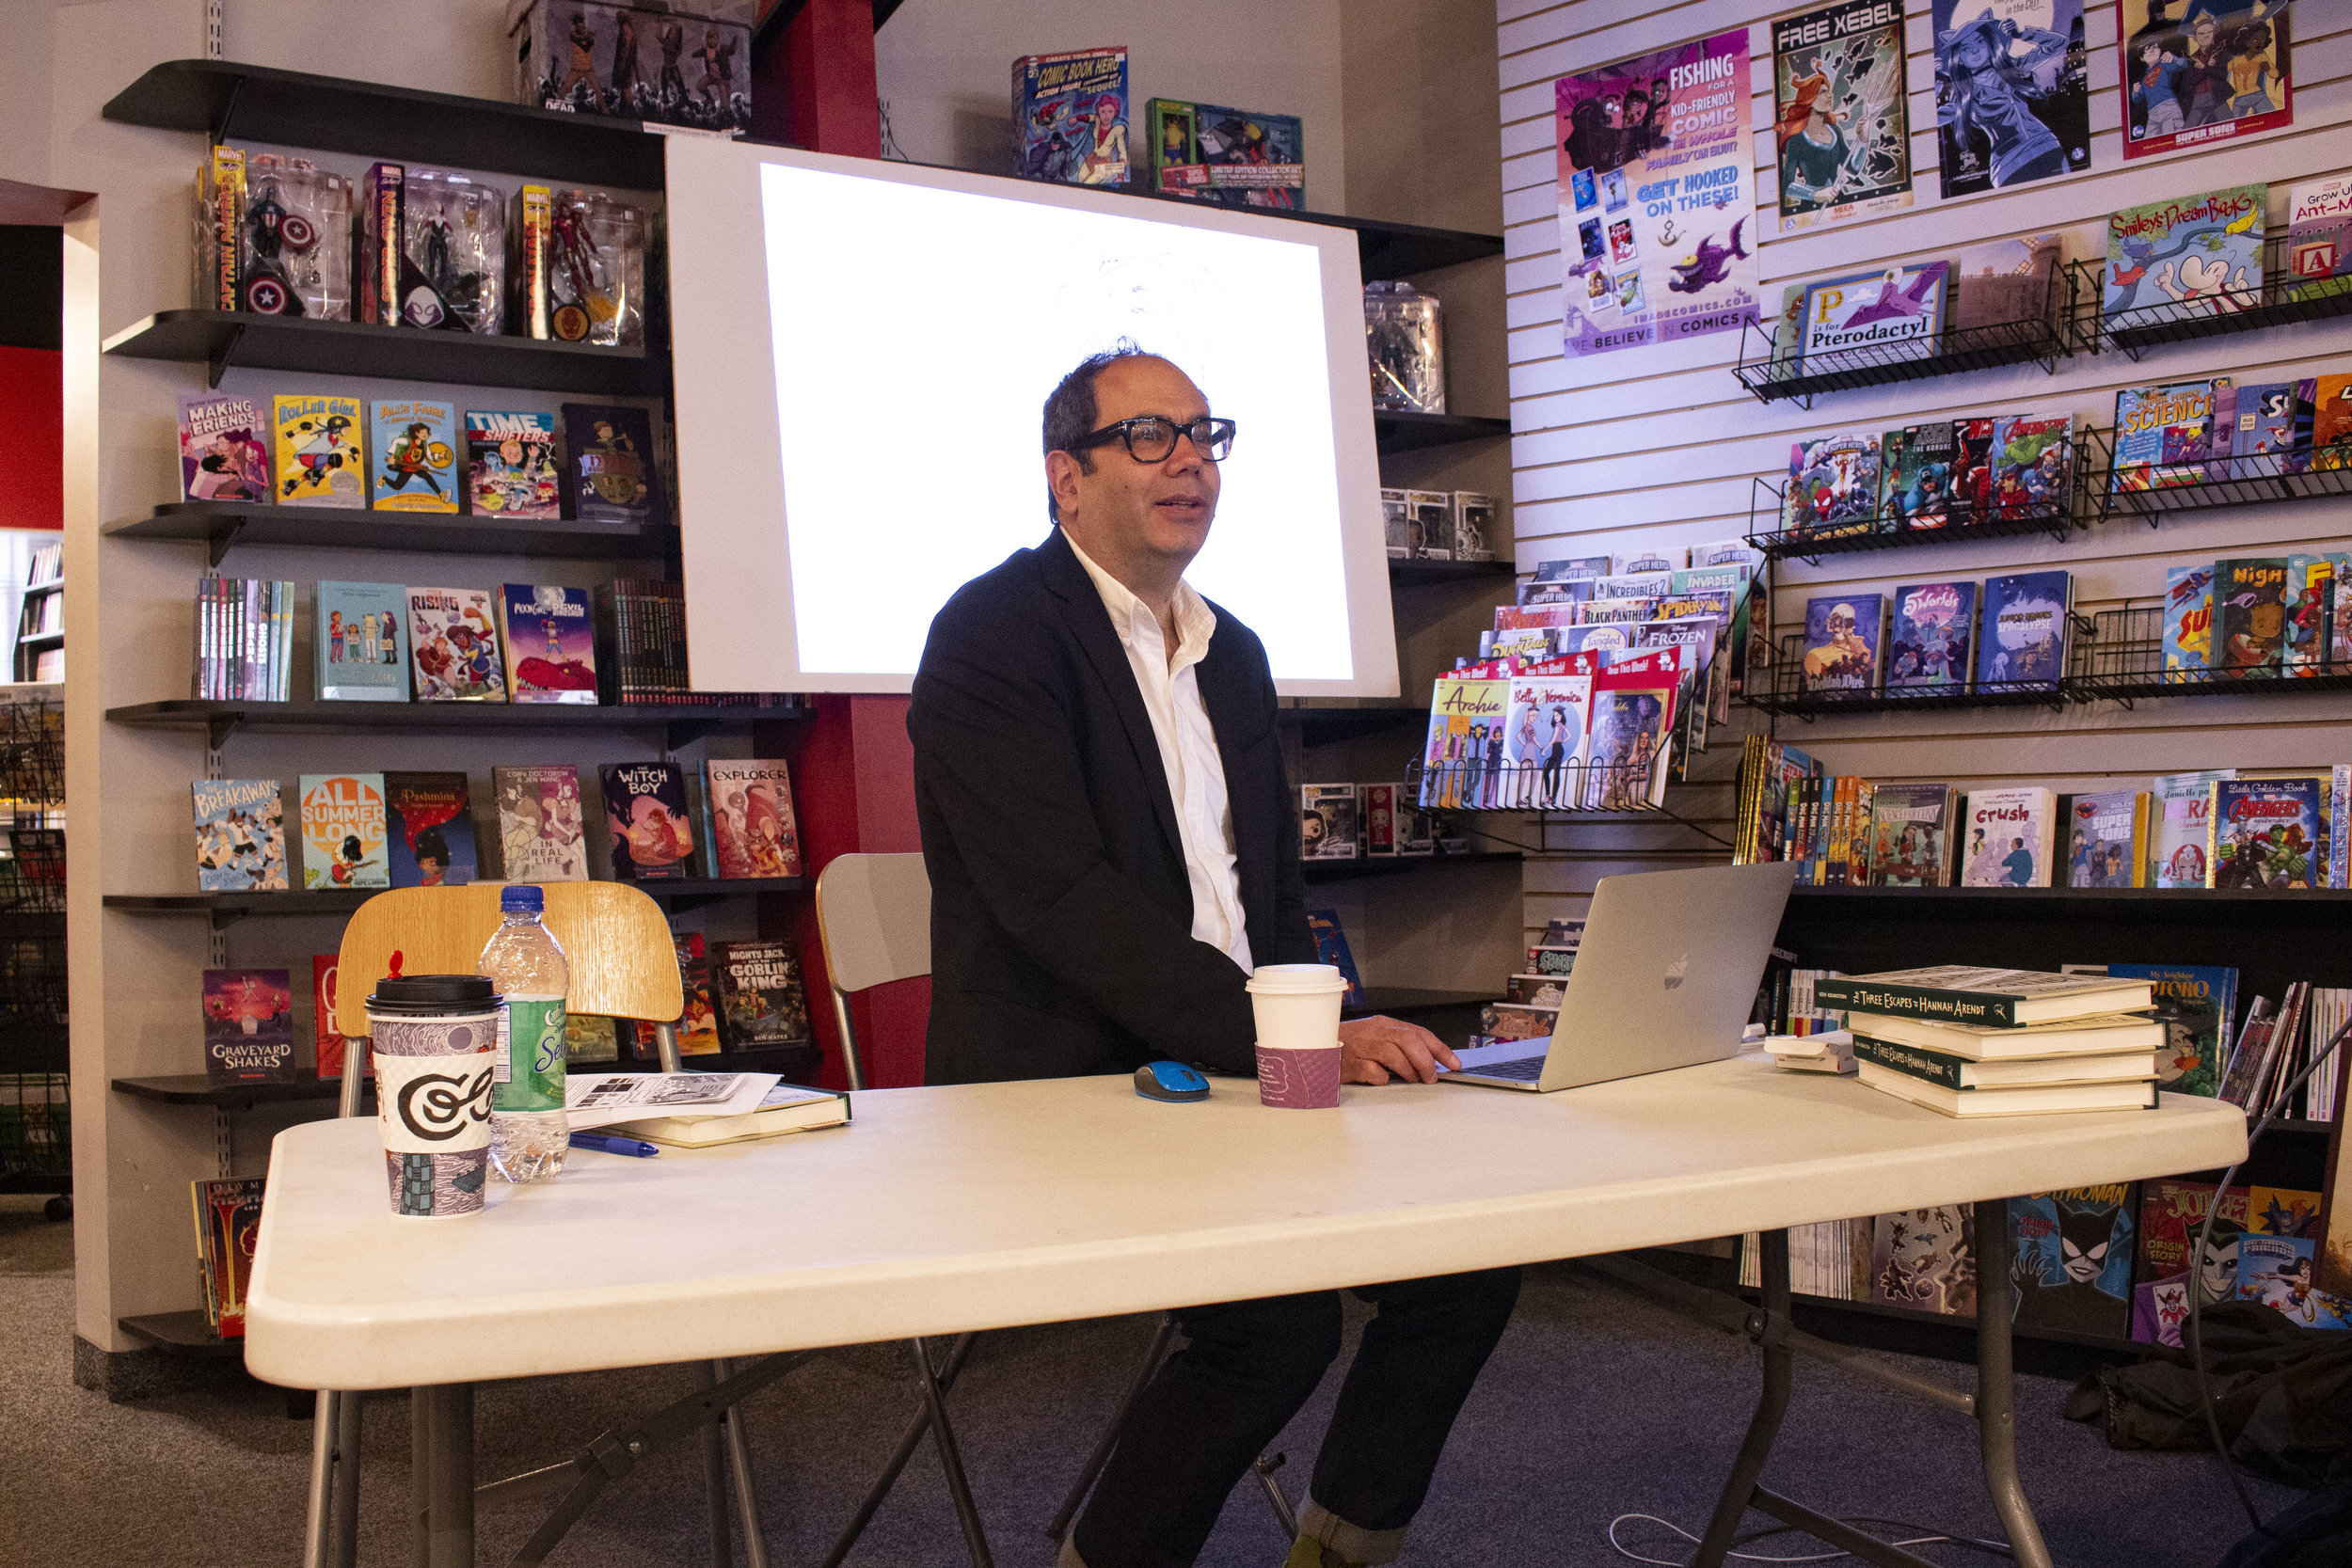 Ken Krimstein discusses his book The Three Escapes of Hannah Arendt at Comix Revolution.